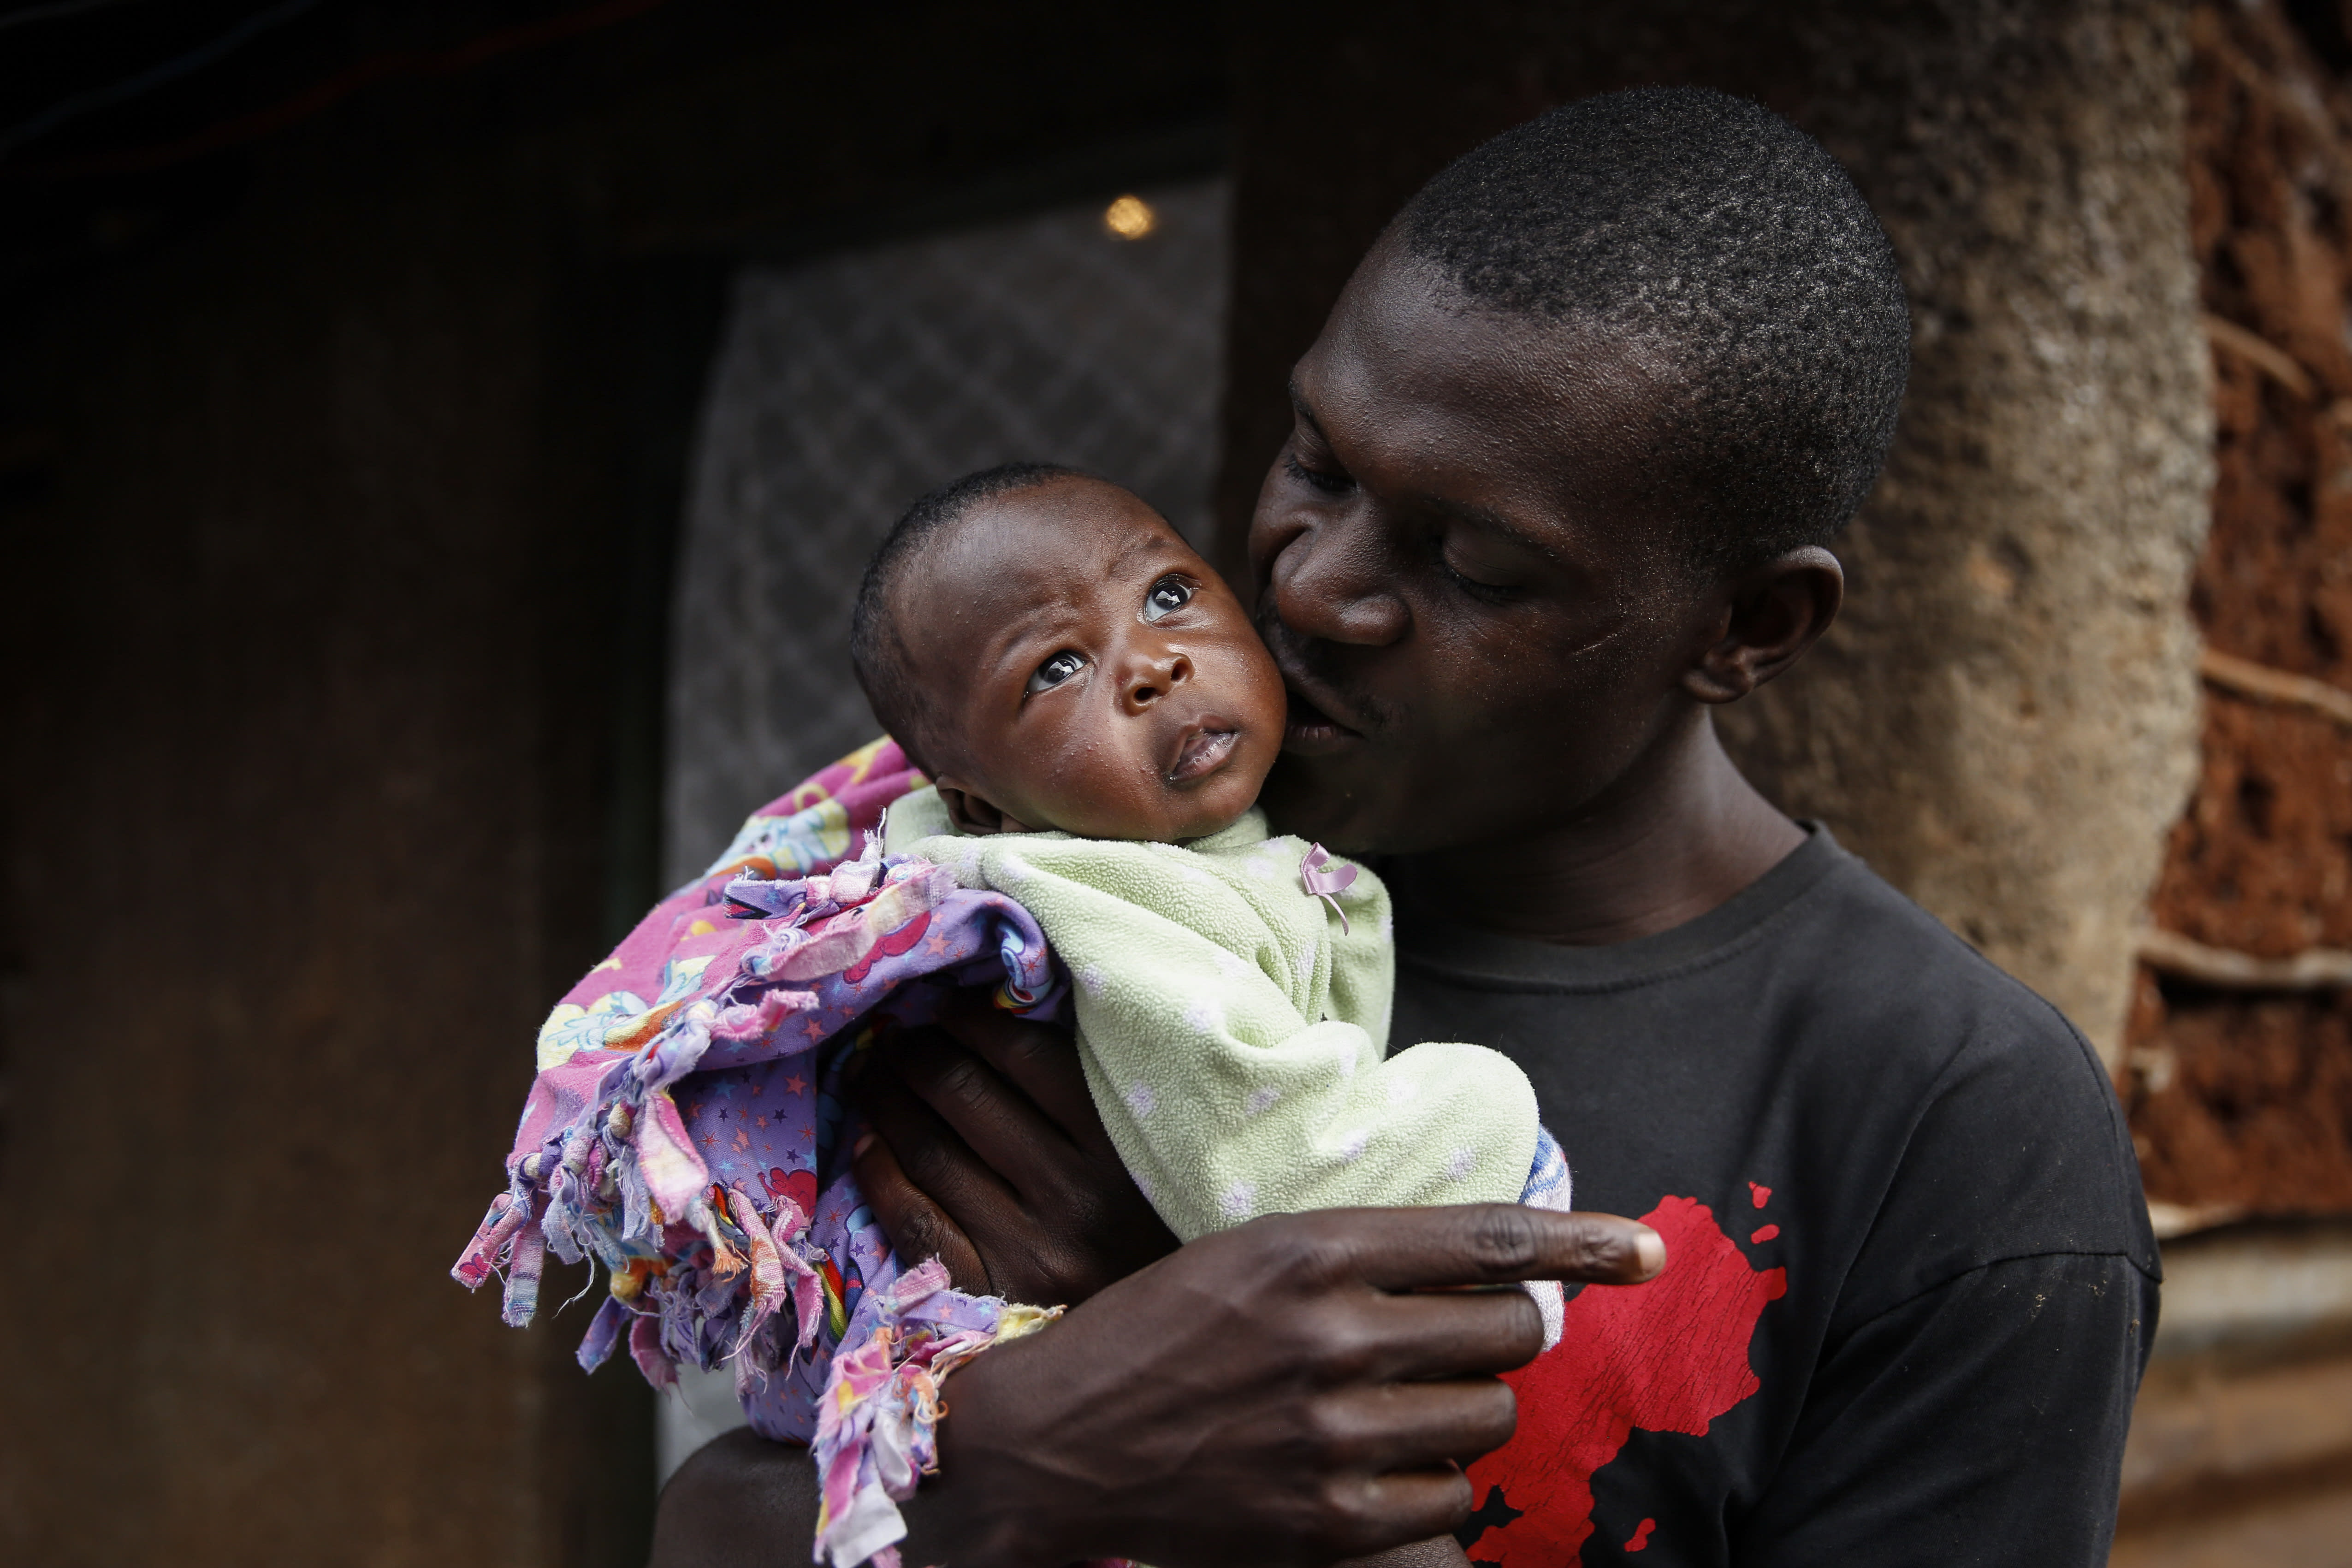 Gabriel Owour Juma holds his daughter Shaniz Joy Juma, delivered a month earlier by a traditional birth attendant during a dusk-to-dawn curfew, in the Kibera slum of Nairobi, Kenya Friday, July 3, 2020. Kenya already had one of the worst maternal mortality rates in the world, and though data are not yet available on the effects of the curfew aimed at curbing the spread of the coronavirus, experts believe the number of women and babies who die in childbirth has increased significantly since it was imposed mid-March. (AP Photo/Brian Inganga)